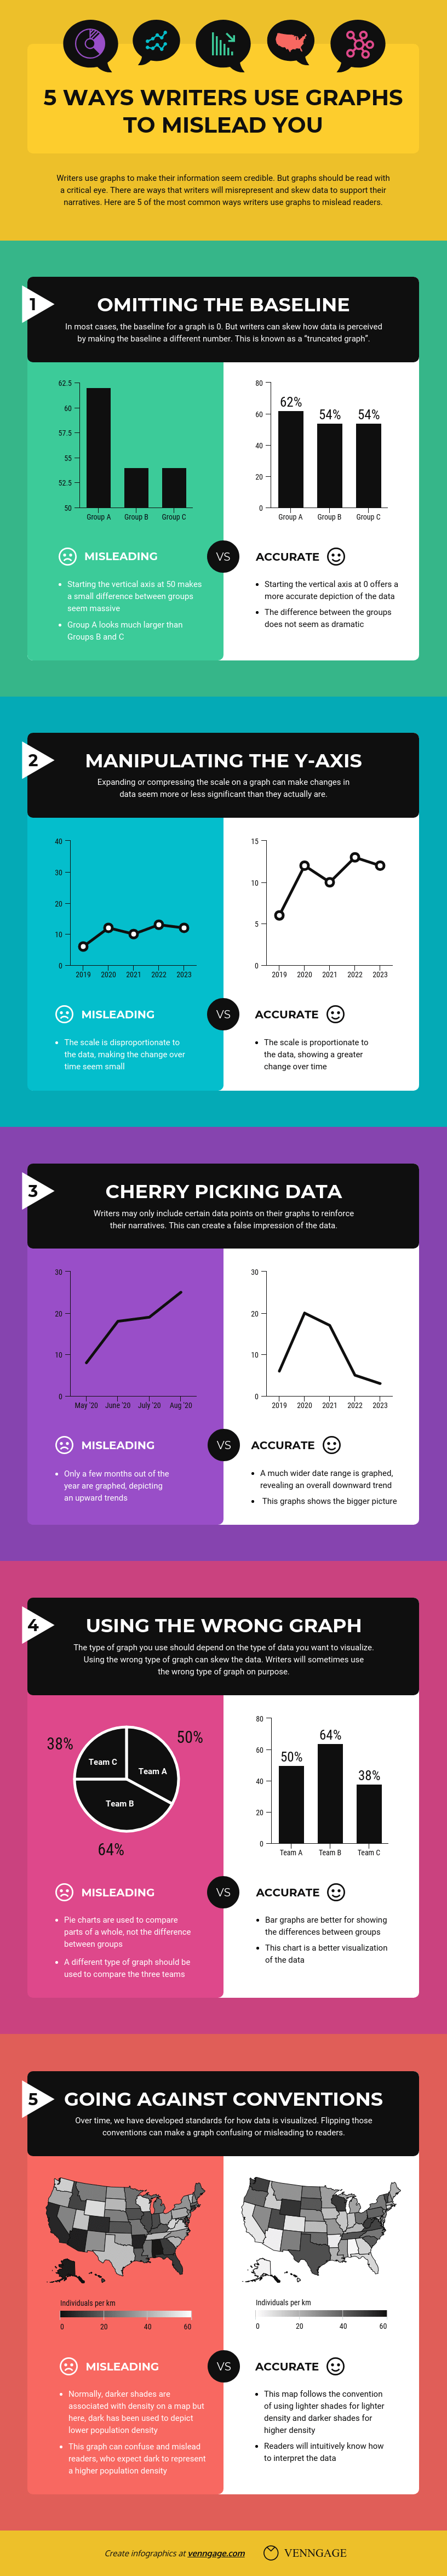 Misleading Graphs Infographic Template